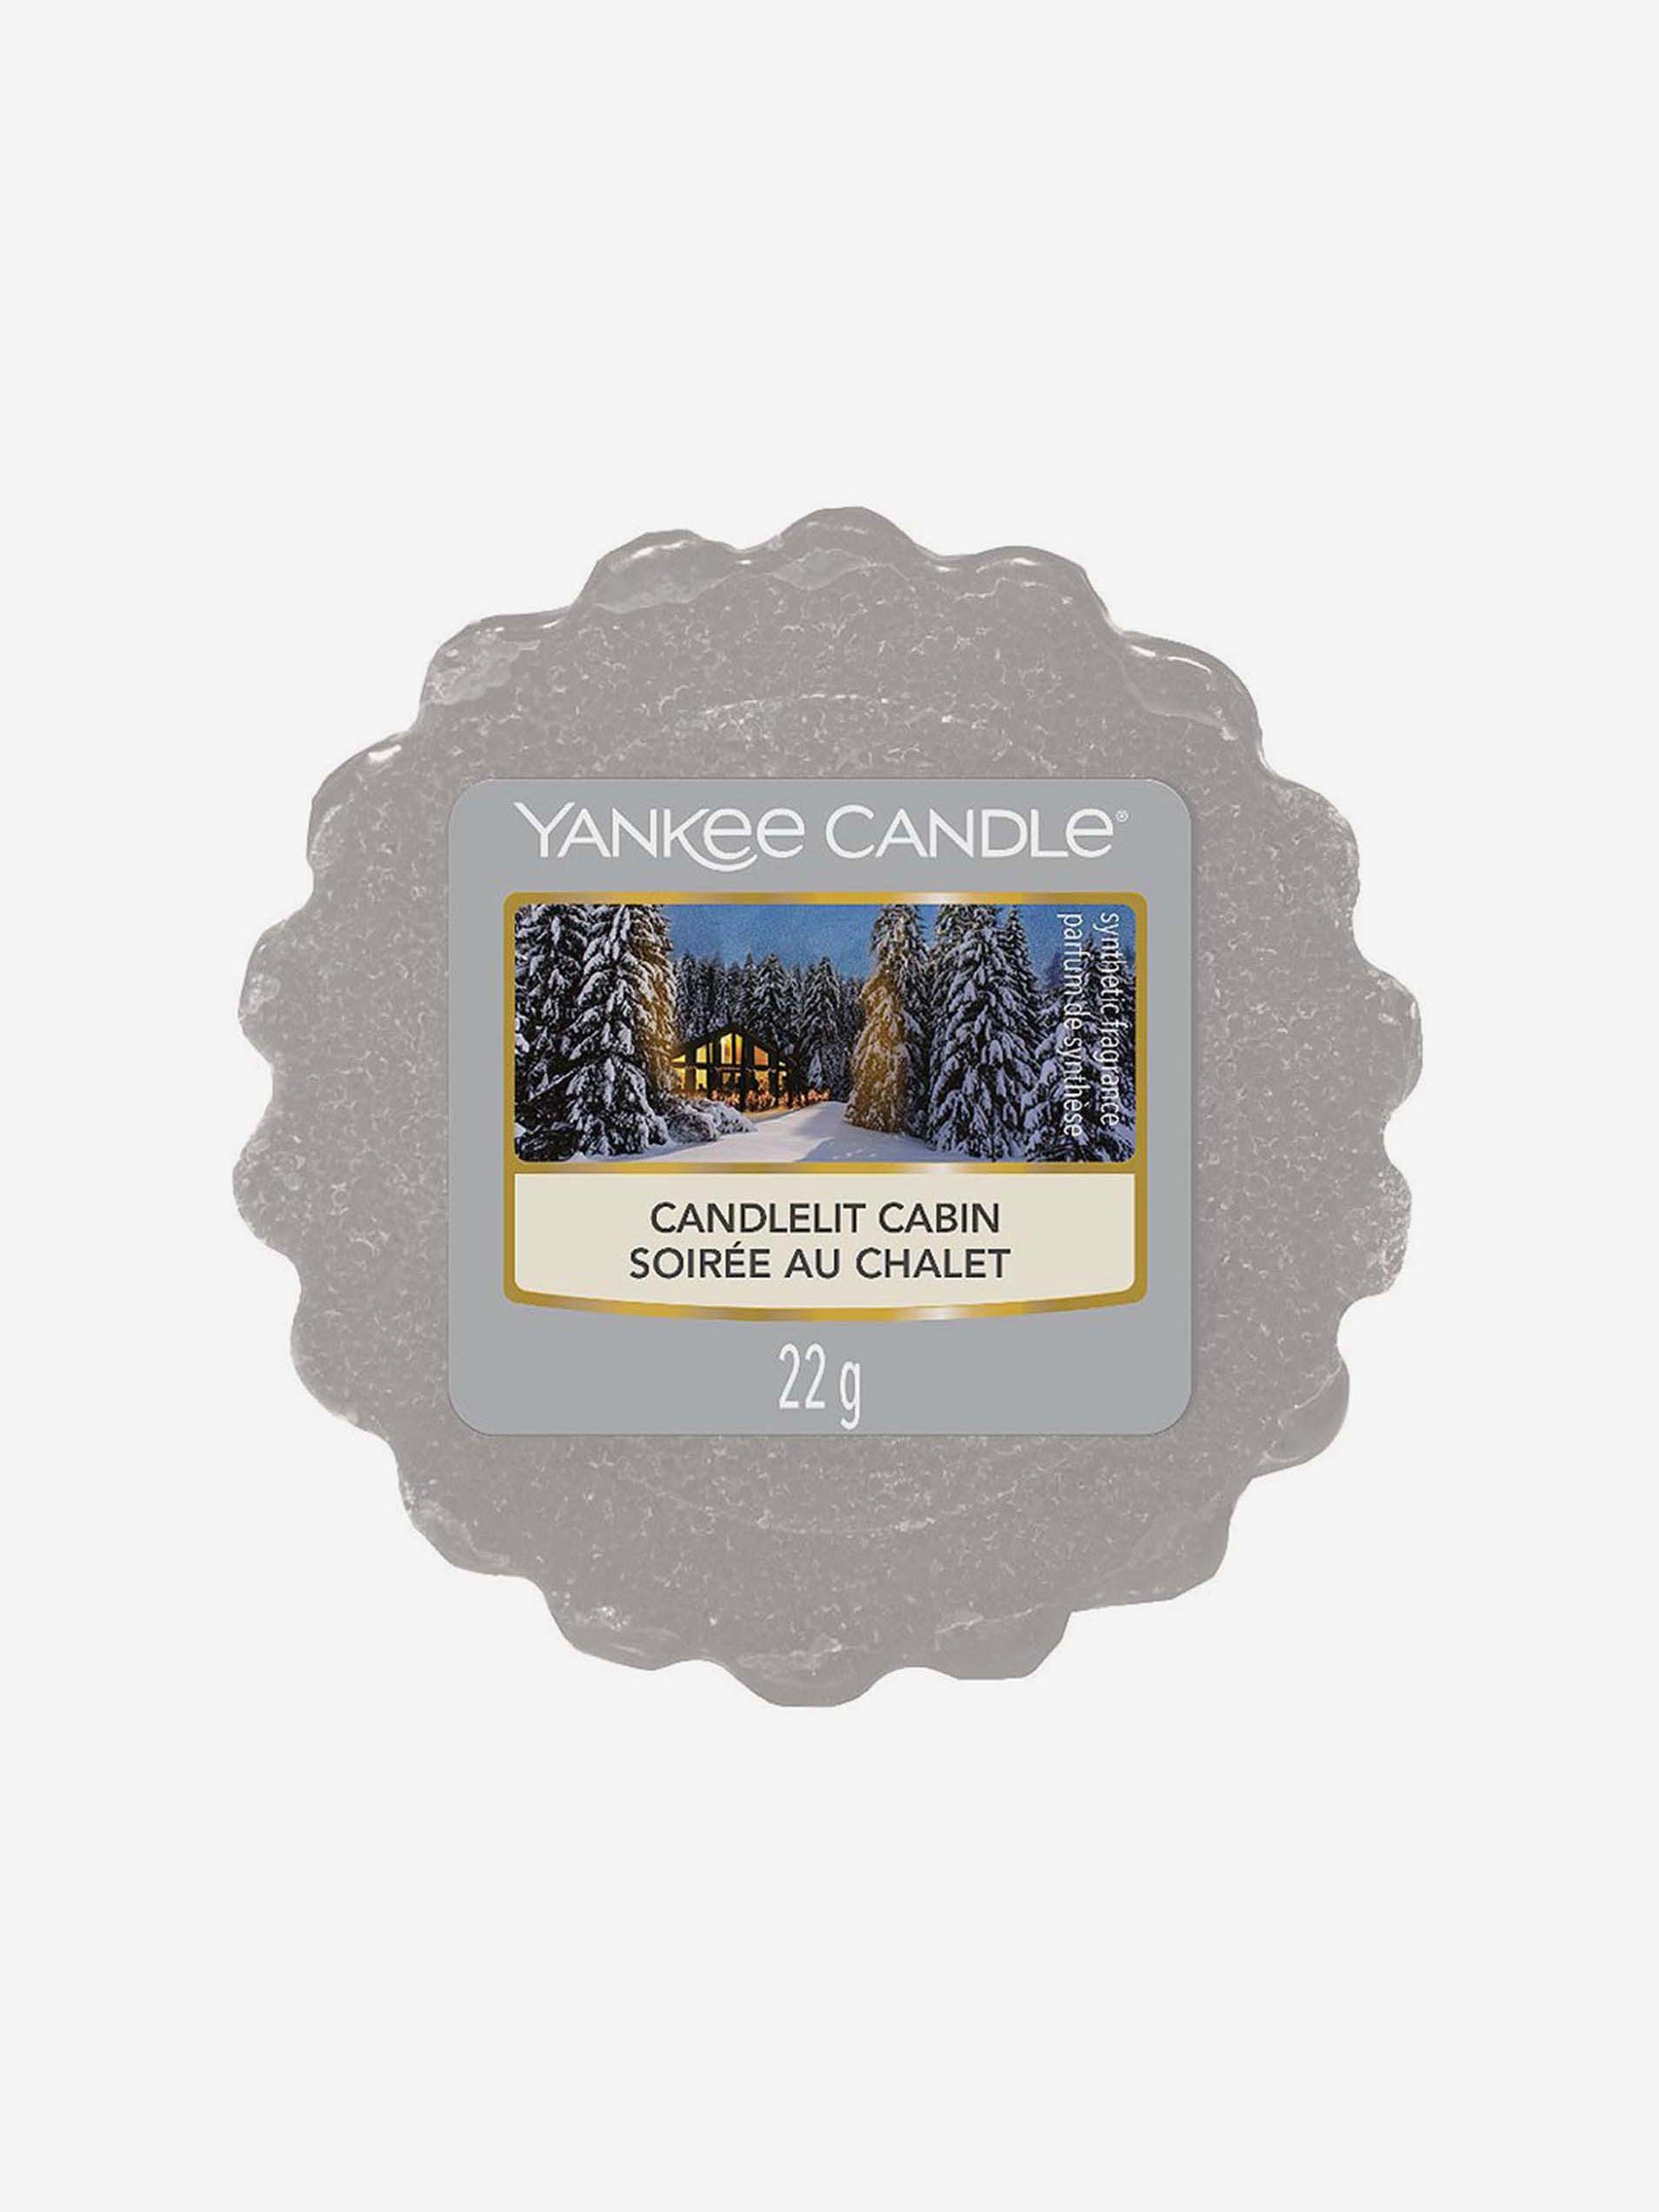 Yankee Candle vonný vosk do aroma lampy Candlelit Cabin